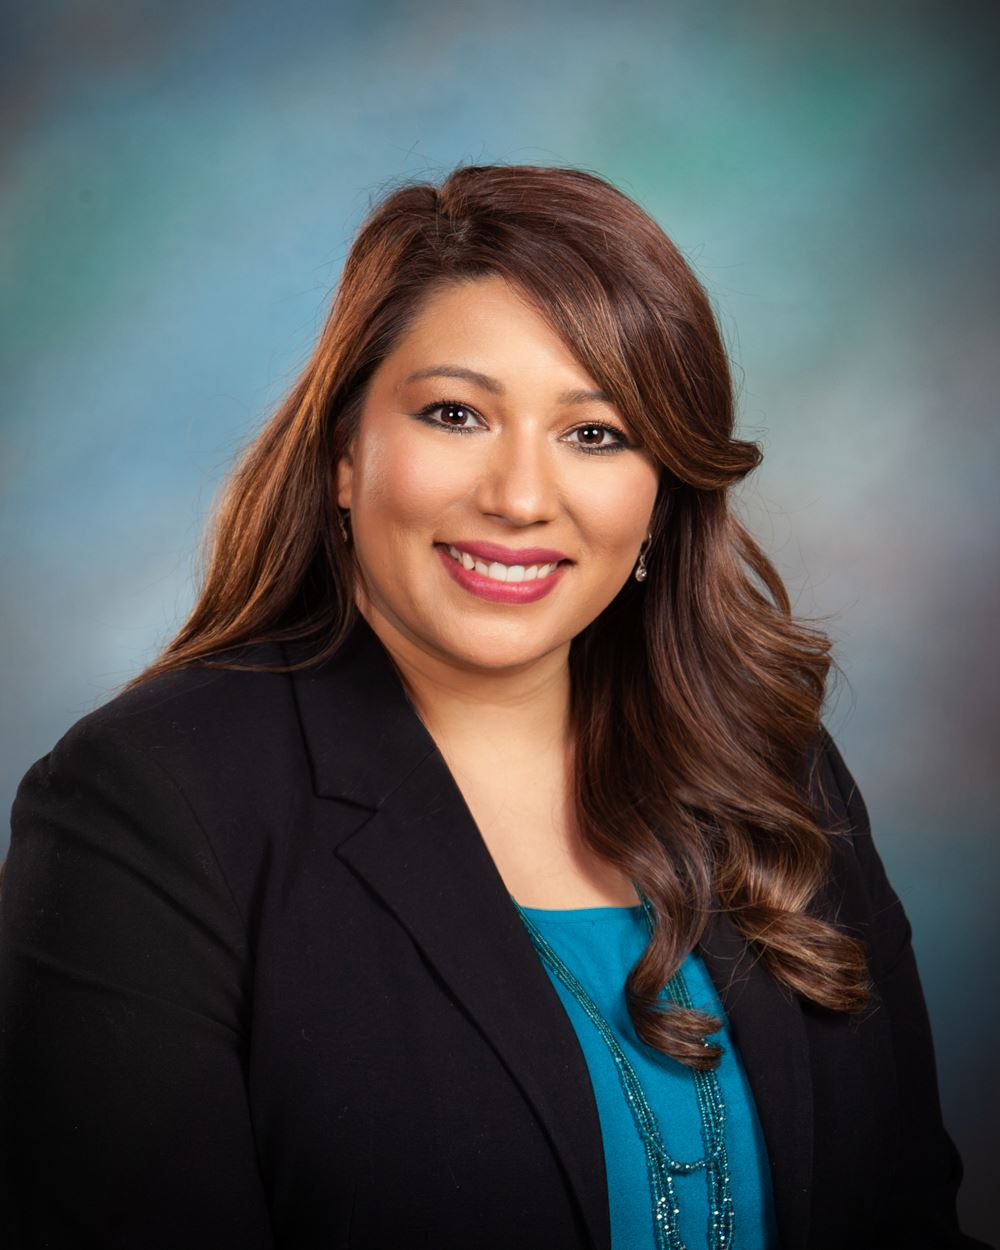 Photograph of Assistant City Manager Melissa Valadez-Cummings